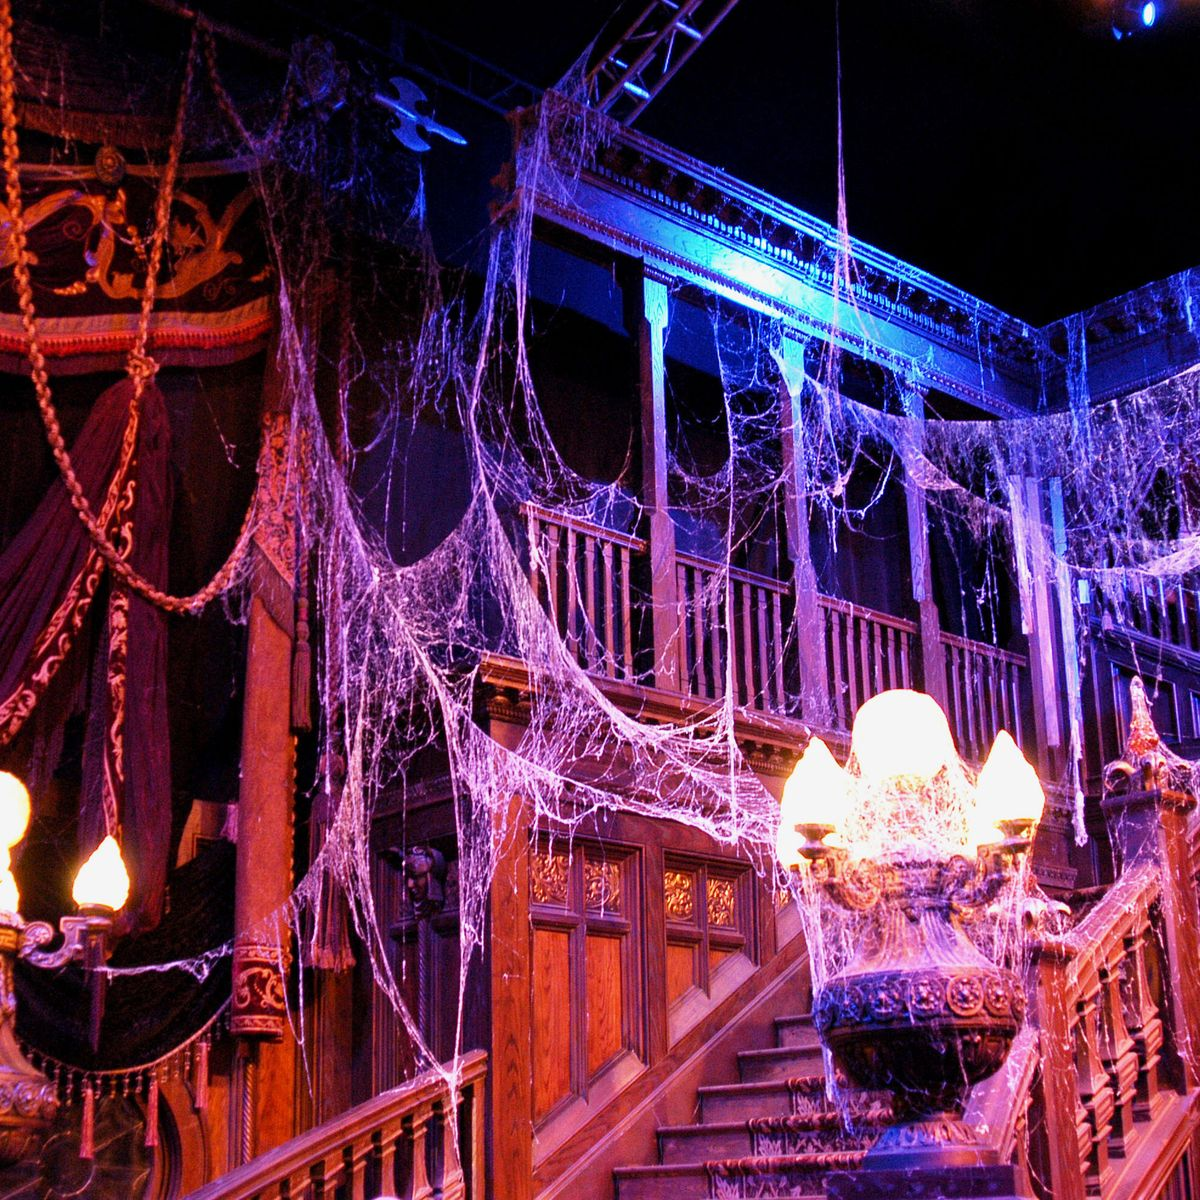 The Best Halloween Decor According To Haunted House Experts The Strategist New York Magazine